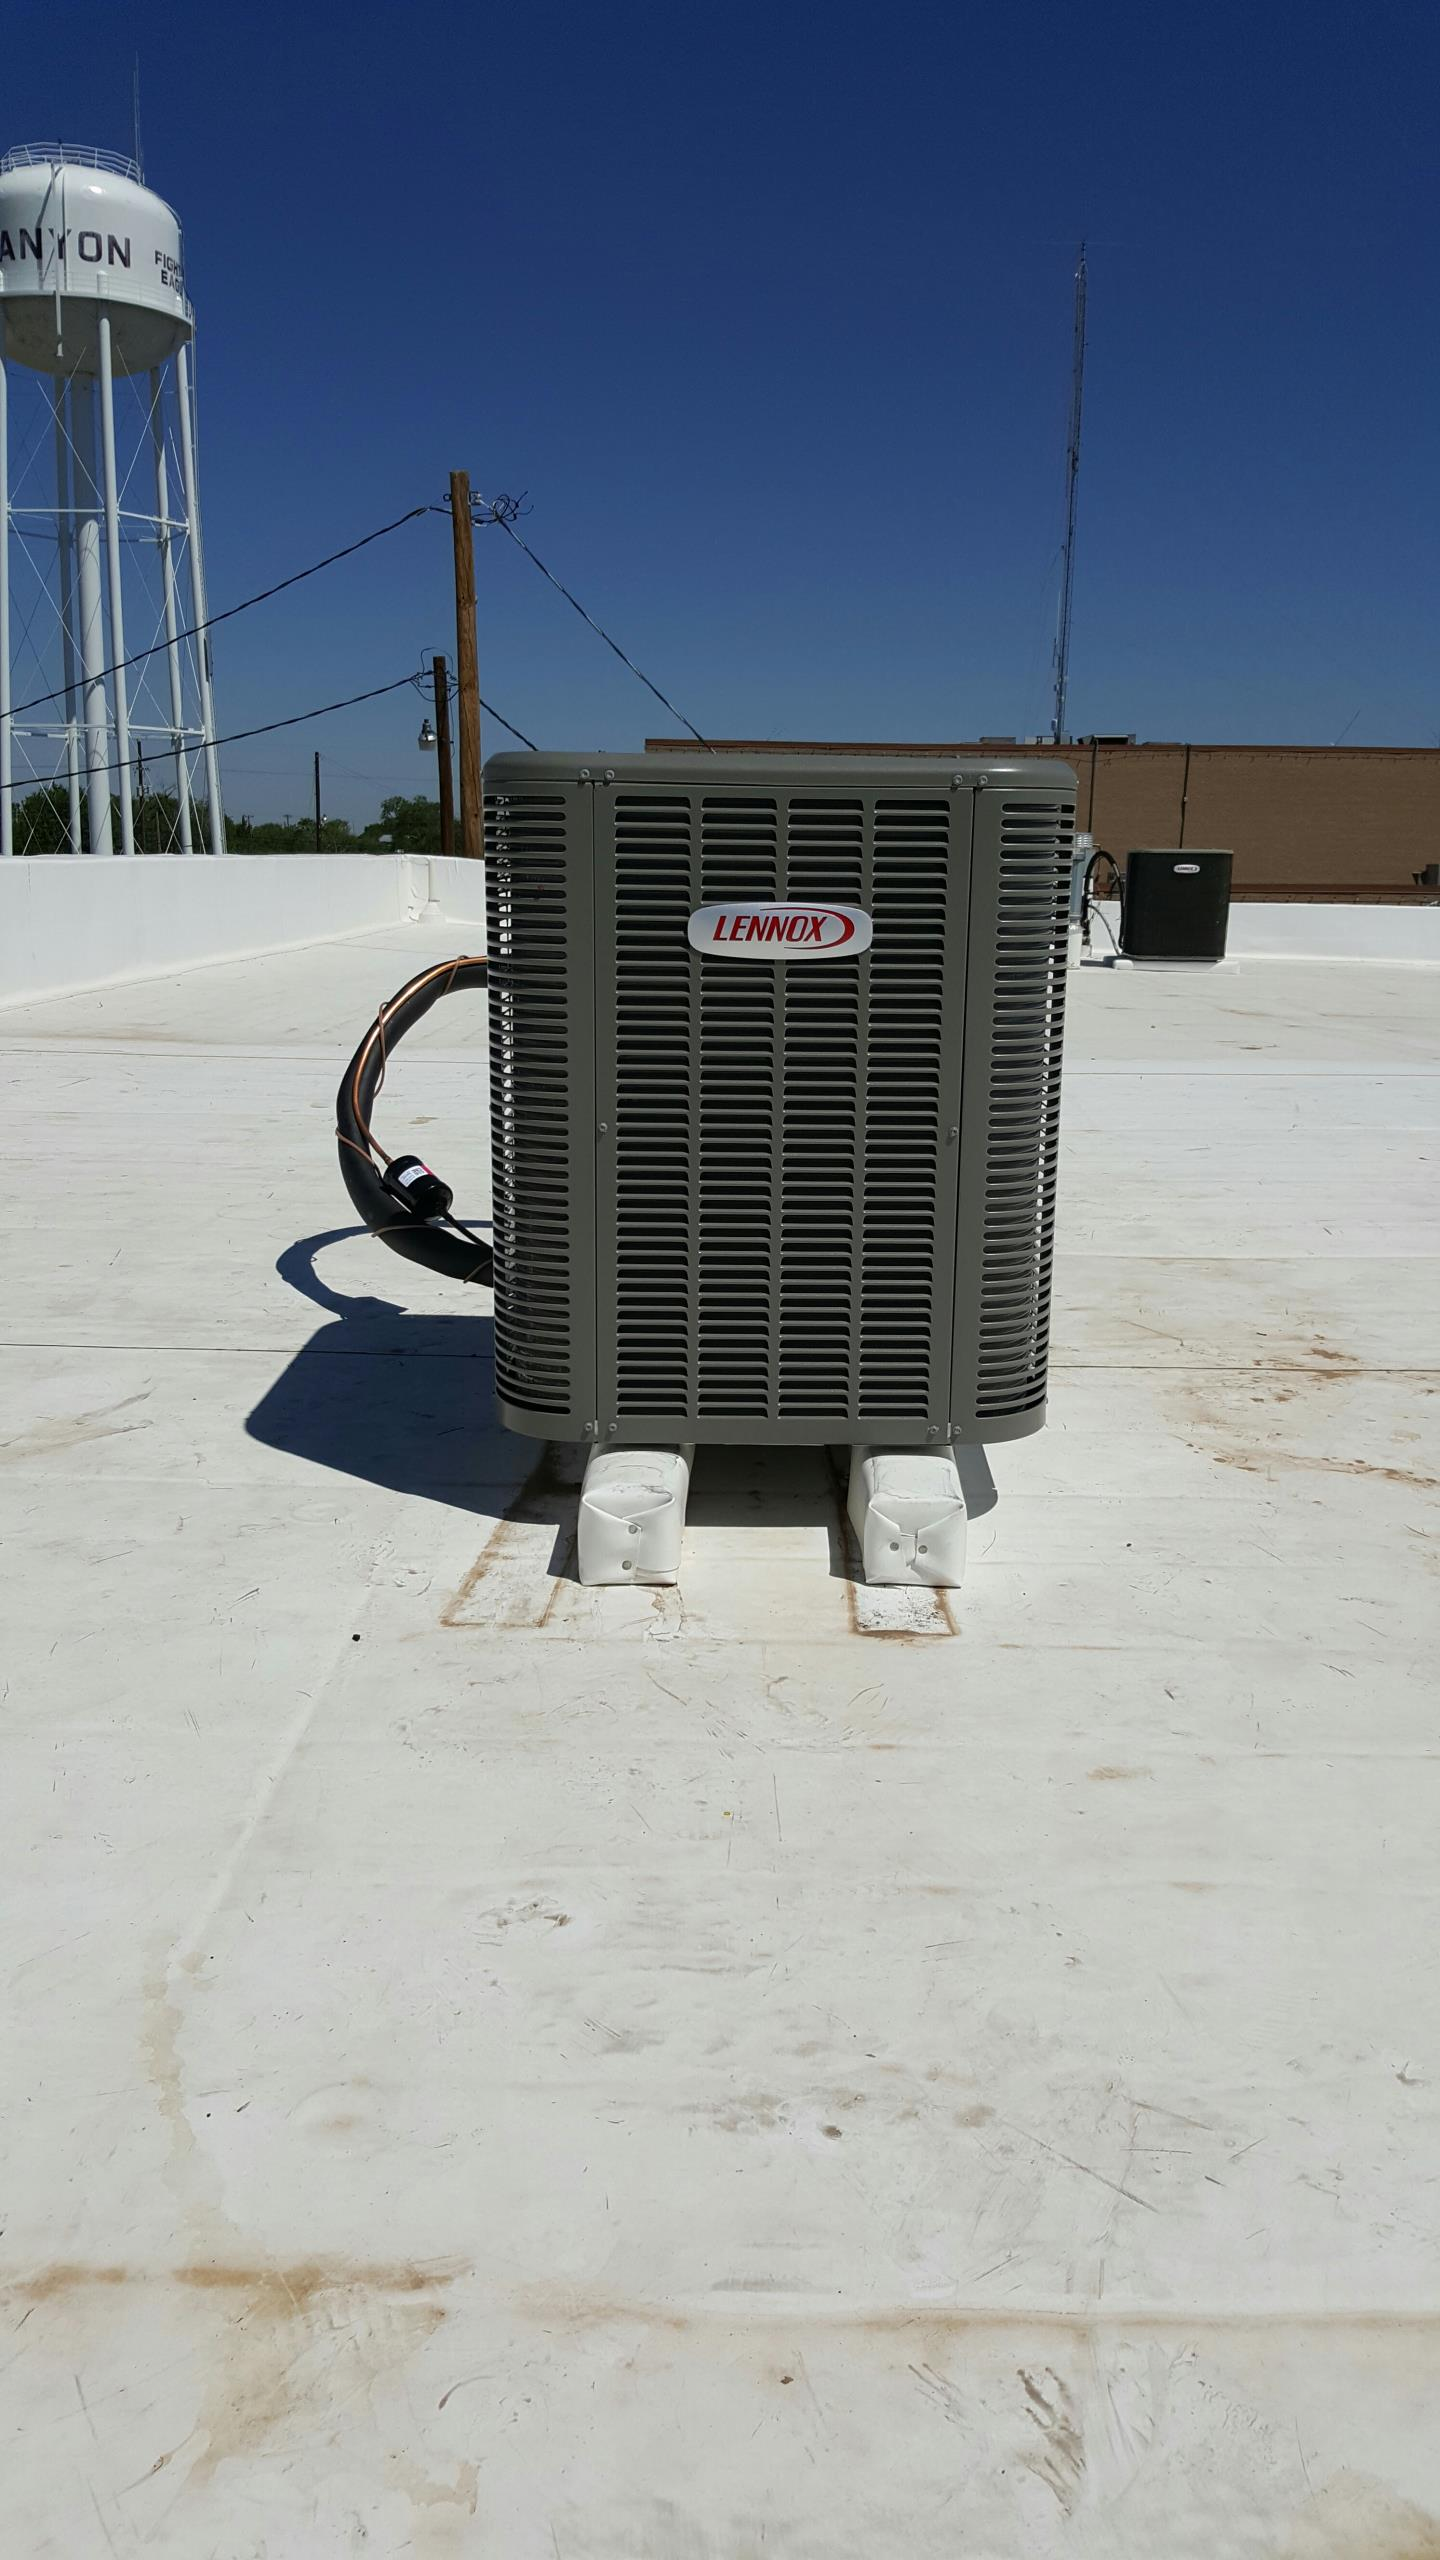 Canyon, TX - New Lennox 3-phase air conditioner installation by Amarillo air conditioning.